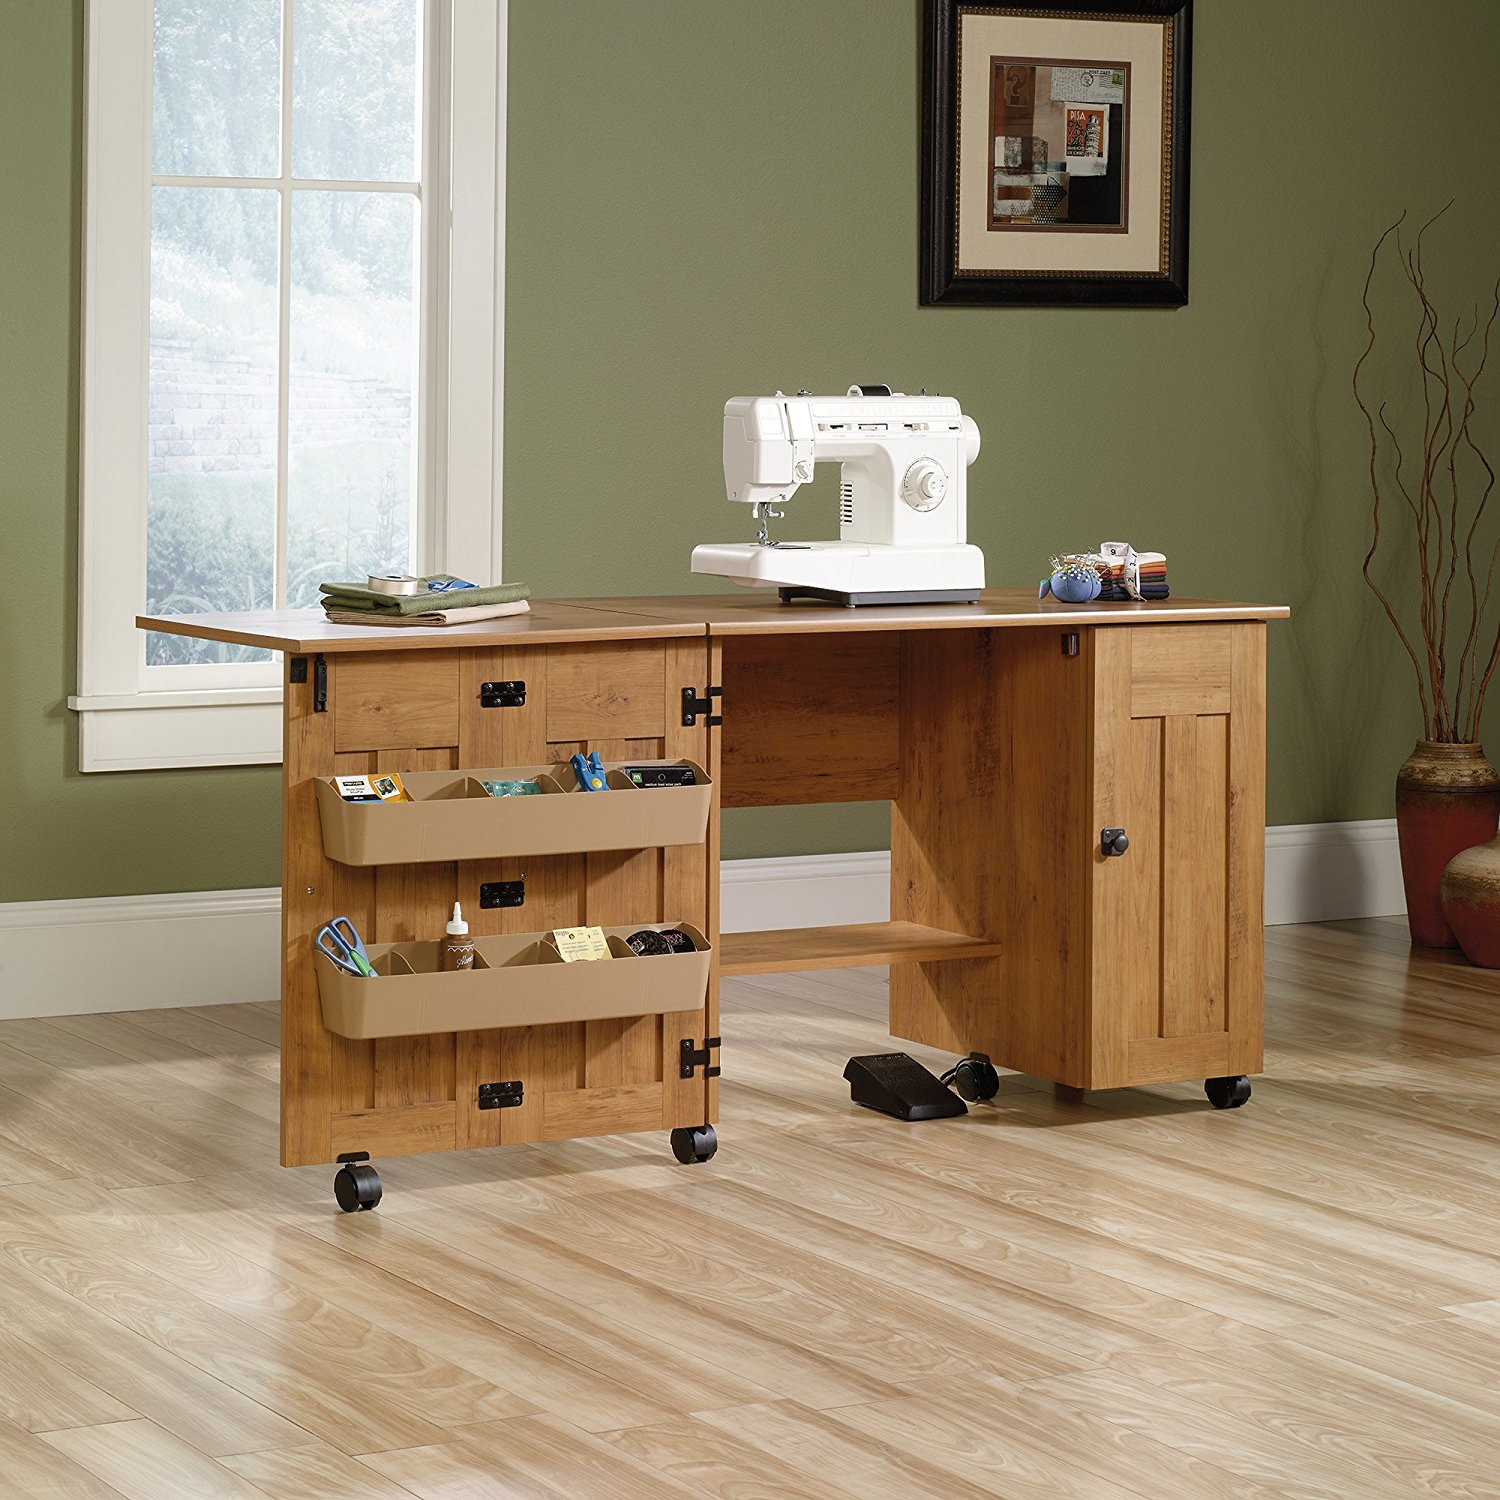 - 6 Best Sewing Machine Tables In 2020 Sew Care